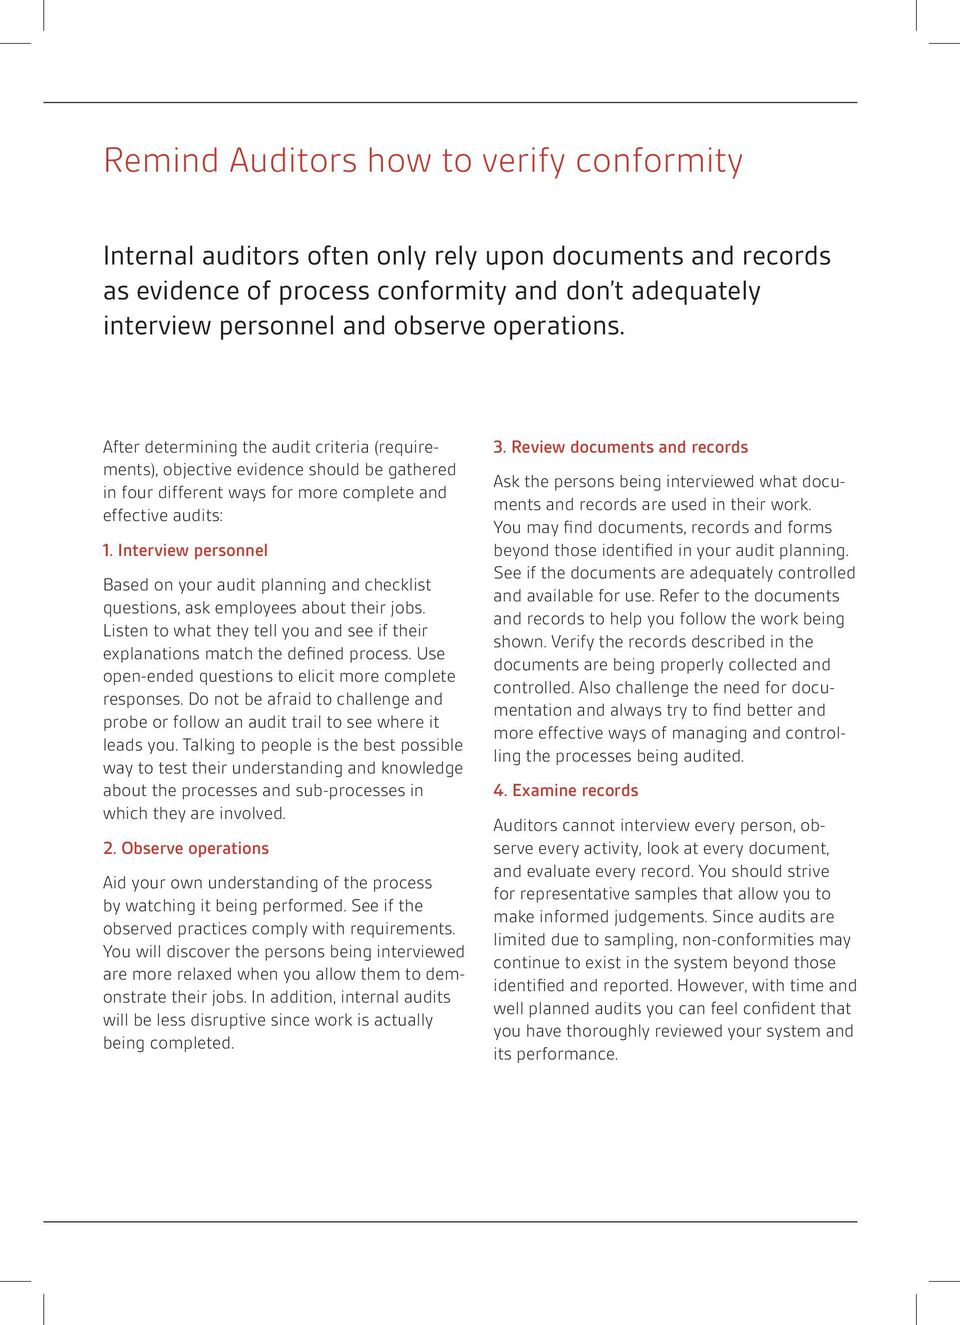 Interview personnel Based on your audit planning and checklist questions, ask employees about their jobs. Listen to what they tell you and see if their explanations match the defined process.